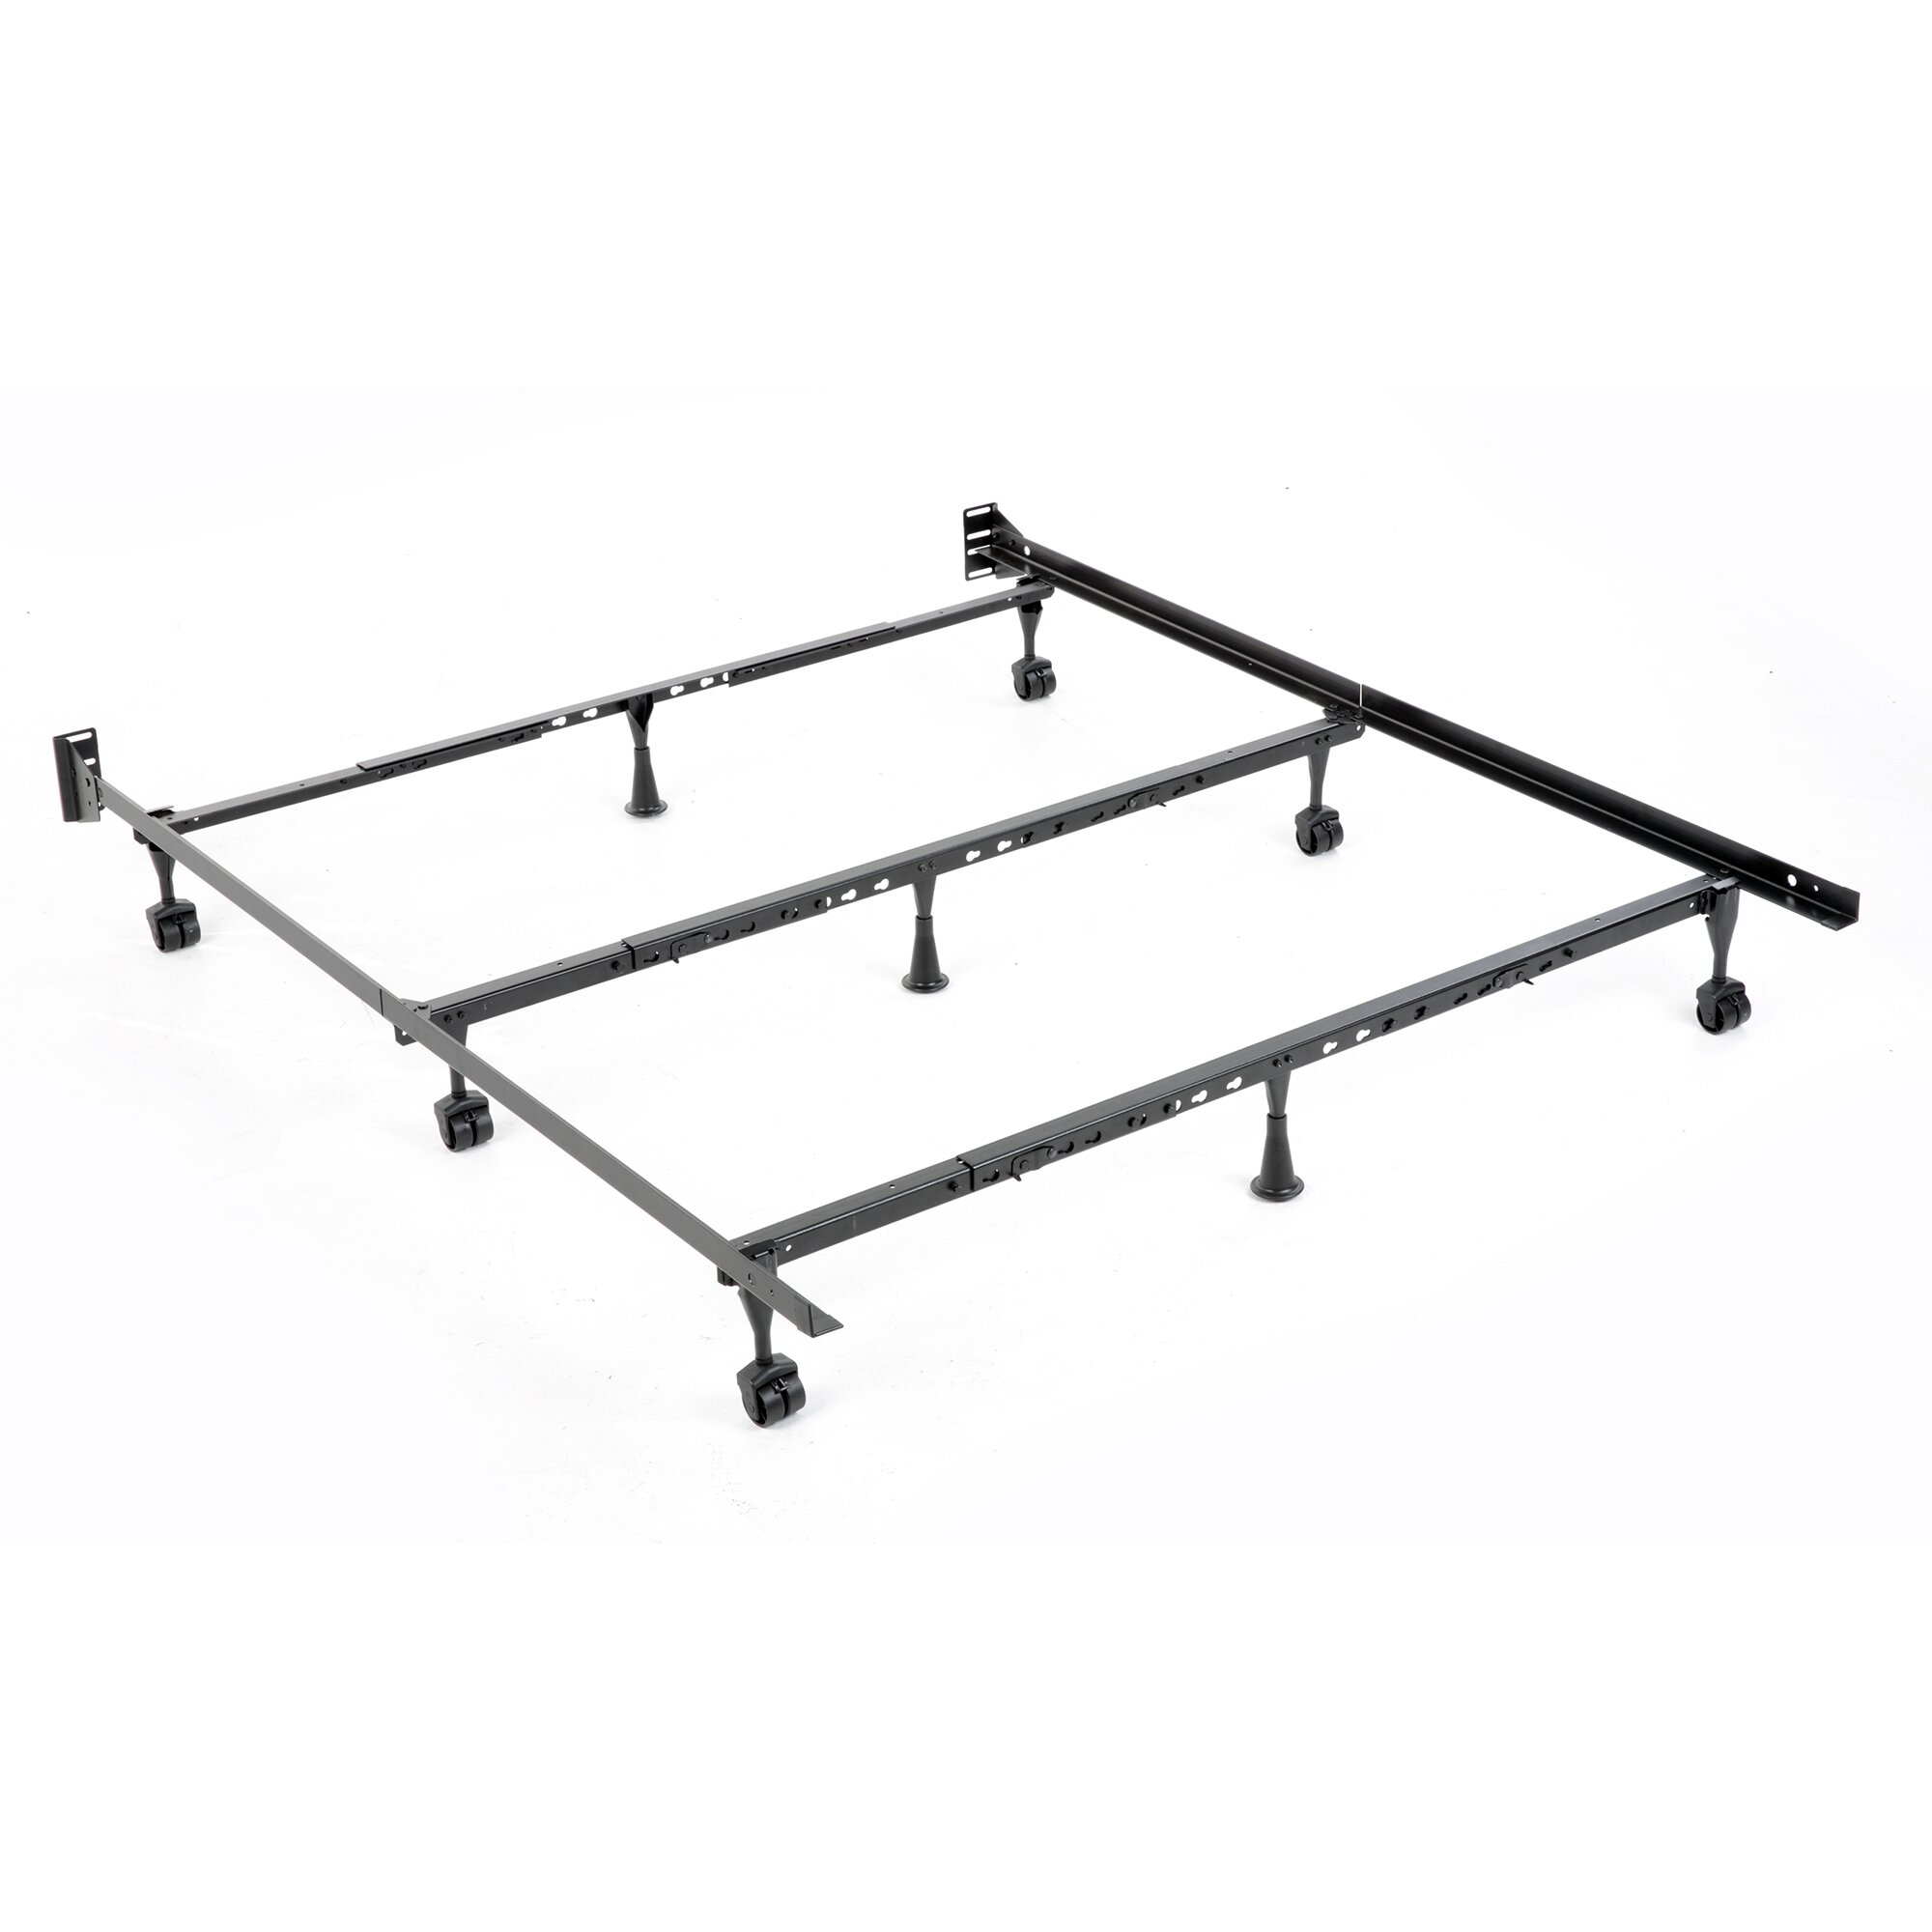 Fashion Bed Group Folding Bed Frame Reviews Wayfair